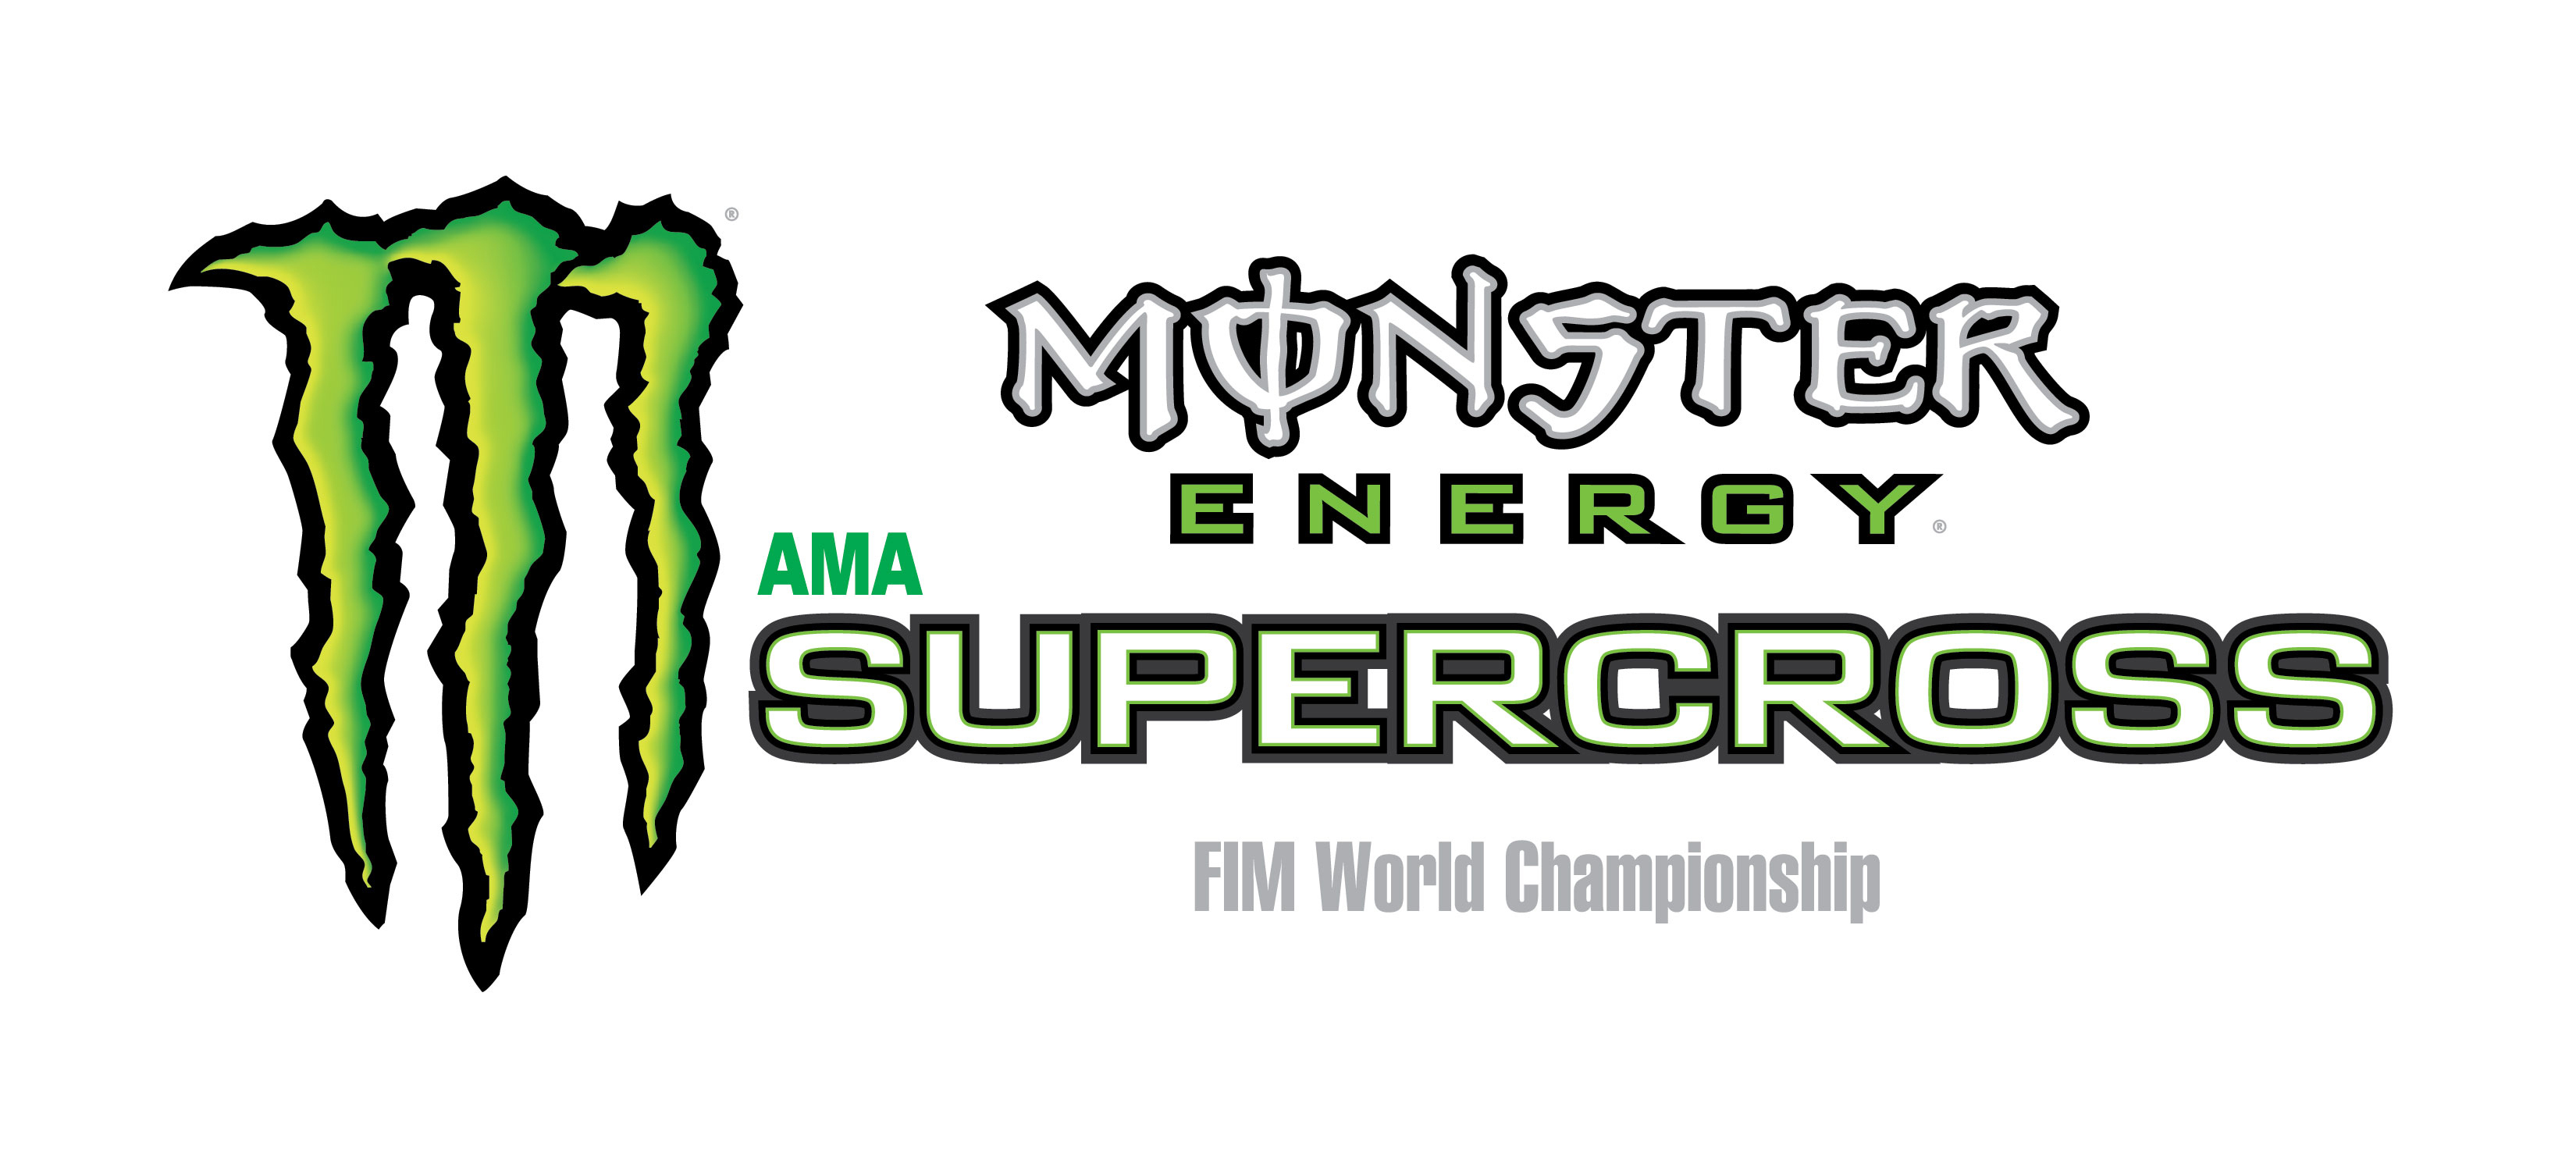 Monster Energy Supercross 2017 TV Schedule Now Available | Business Wire - Ama Supercross Logo PNG